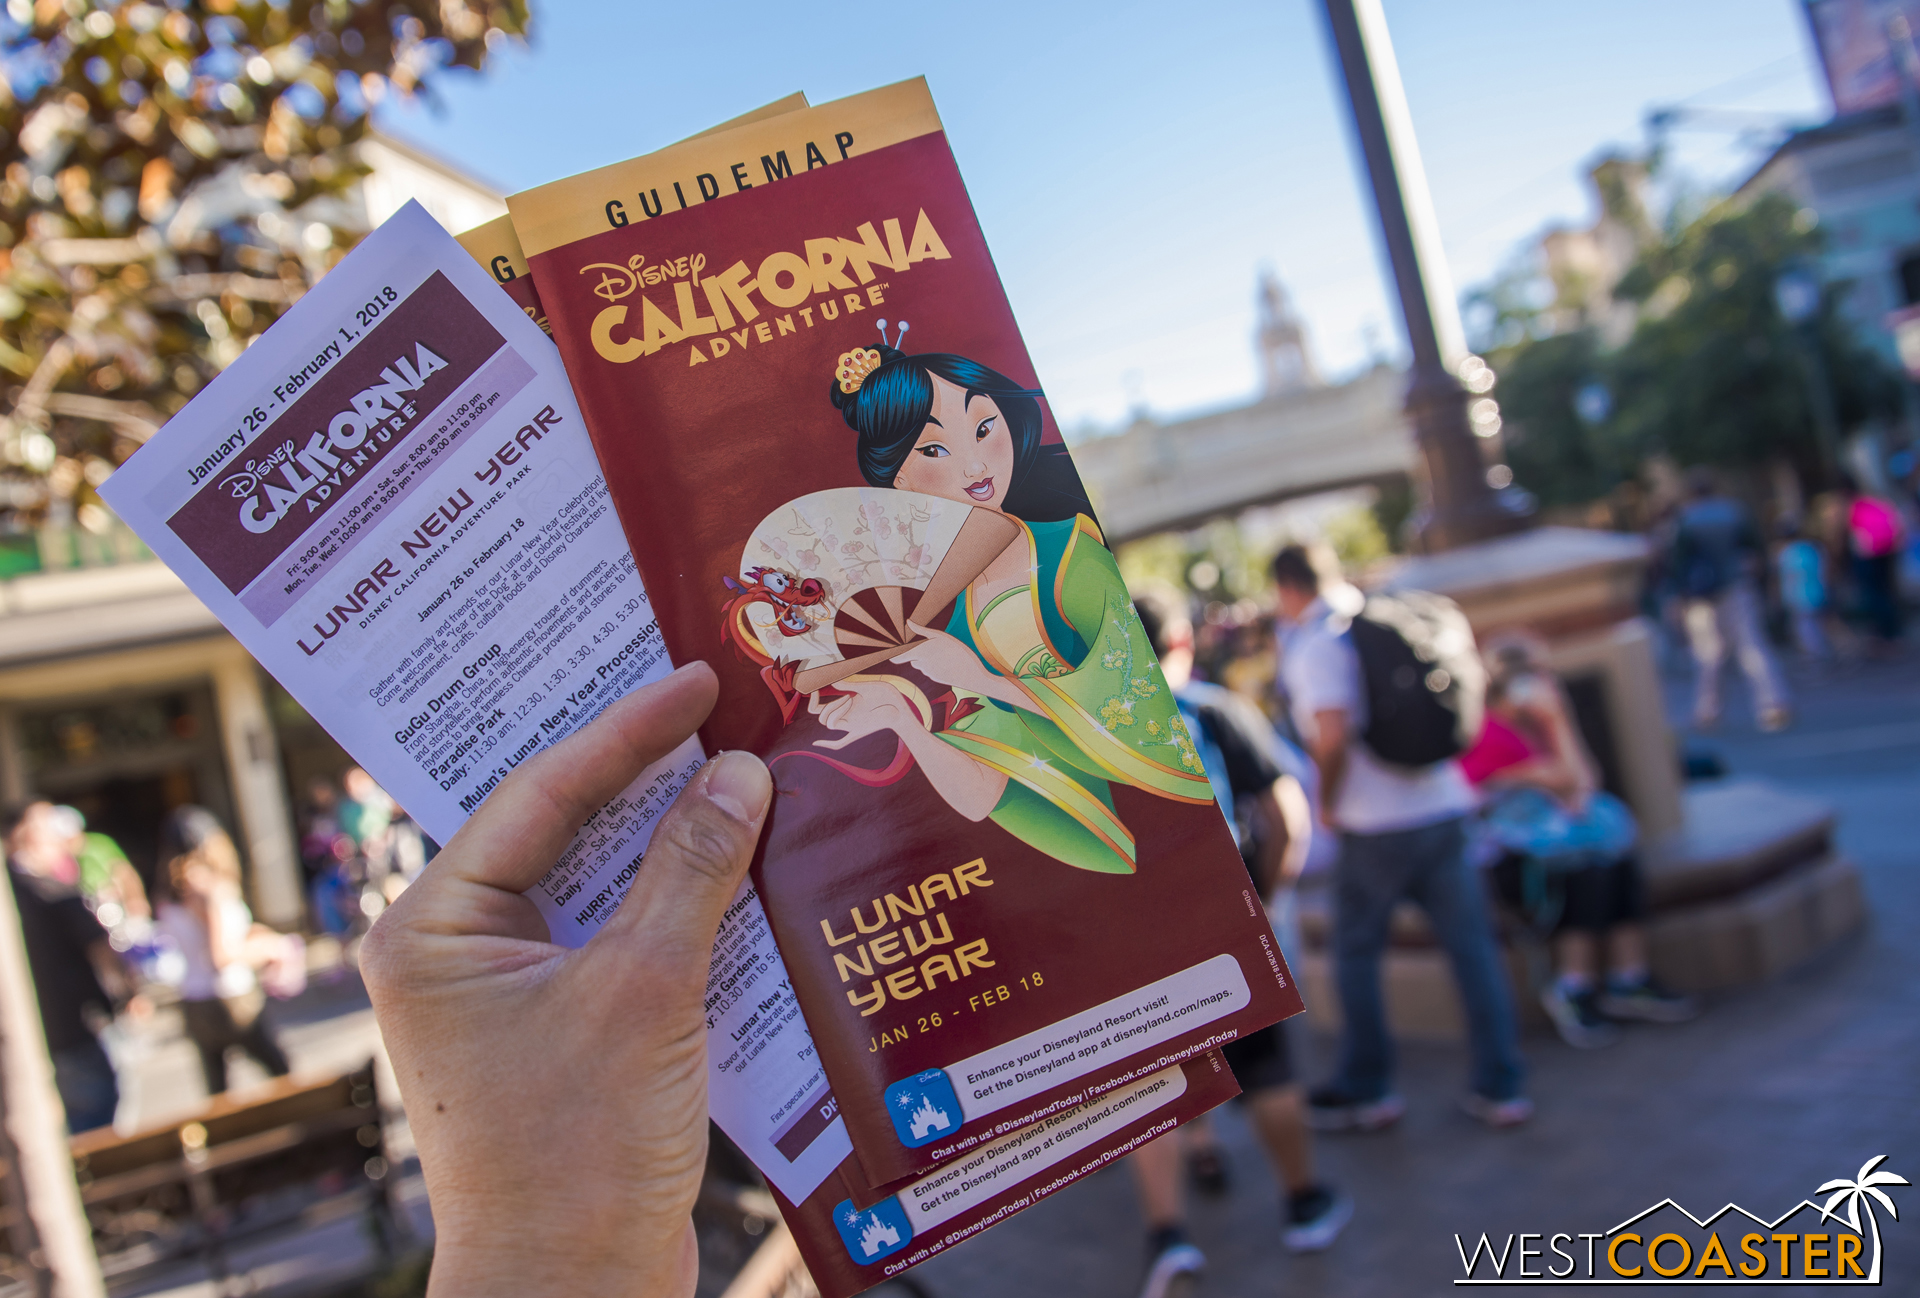 There's an entertainment guide, and Mulan is actually on the park map this year. Last year, they had Elsa, because they had to advertise the  Frozen  show at the Hyperion Theater.